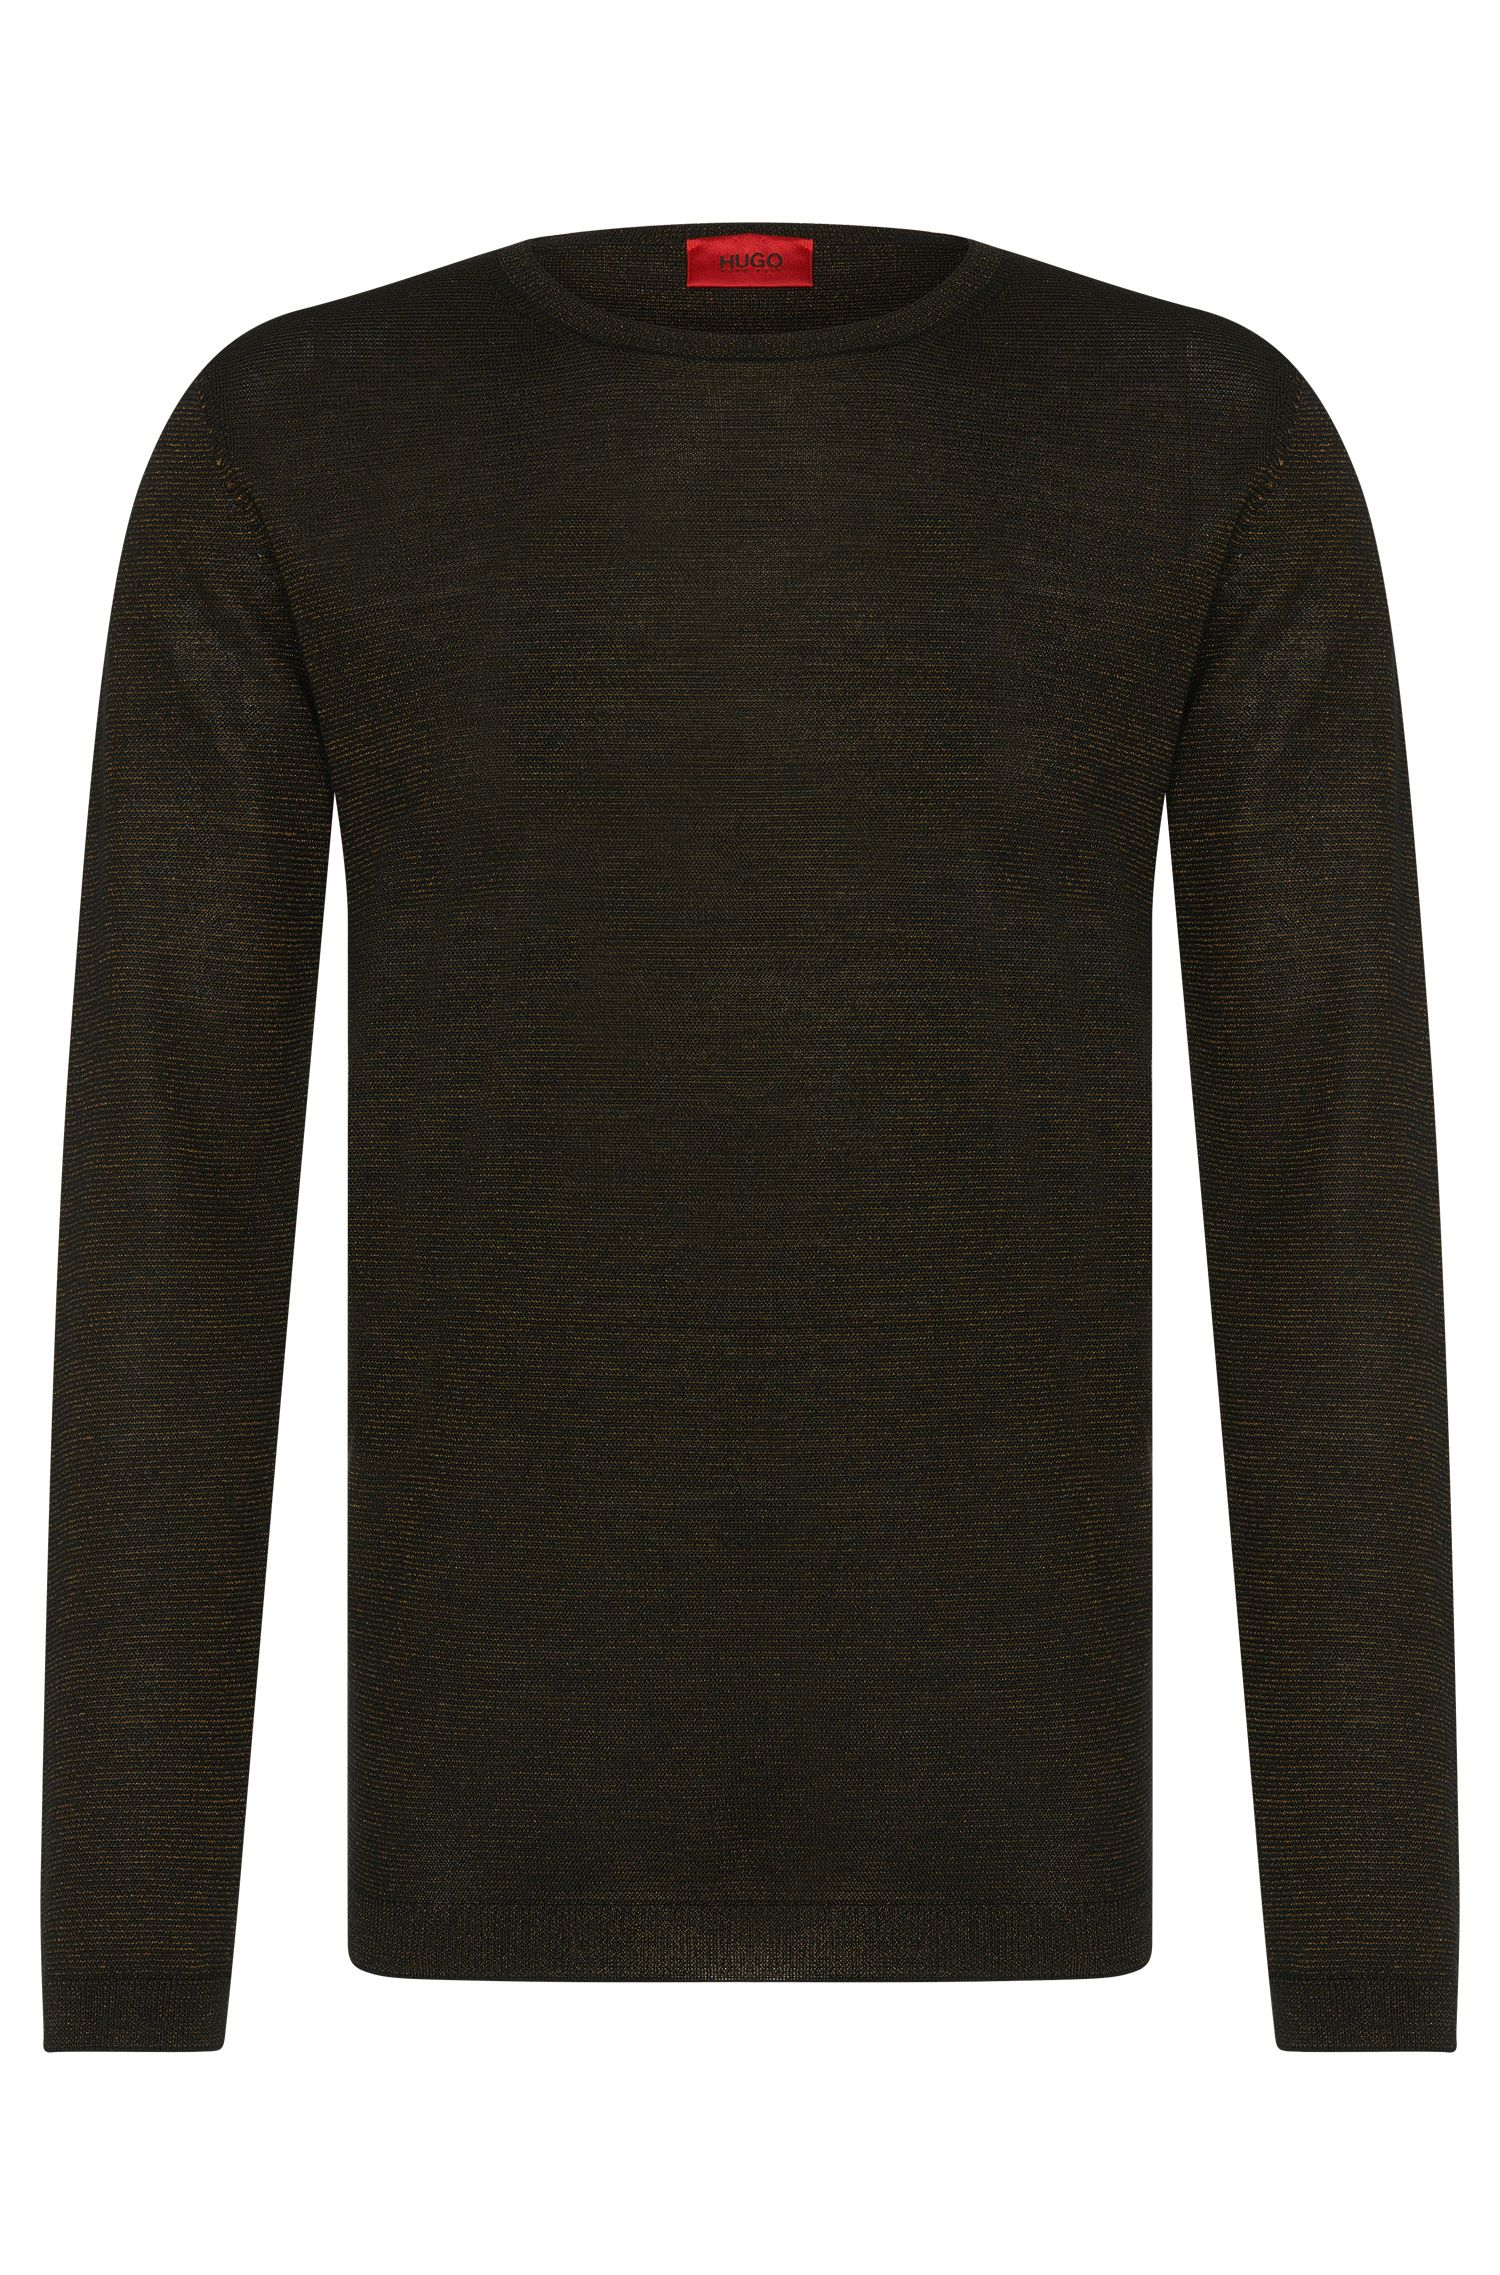 'Salex' | Merino Virgin Wool Blend Metallic Stripe Sweater